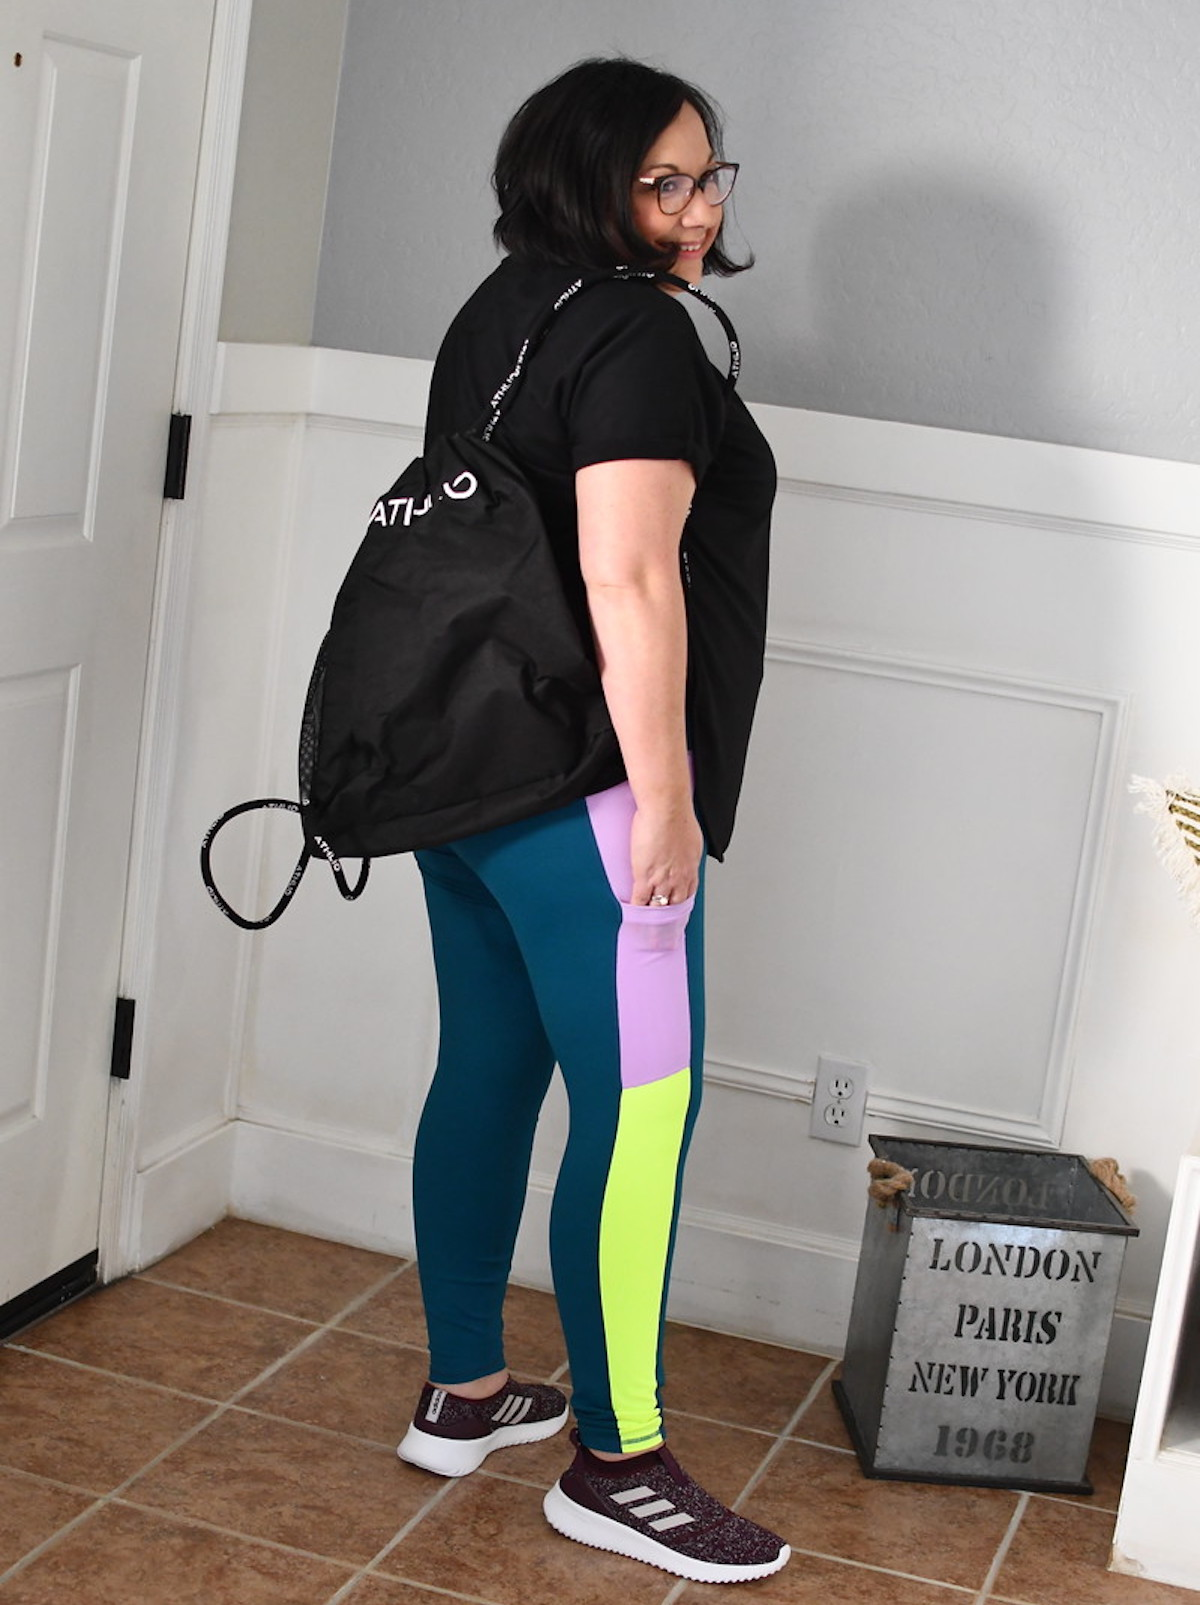 lina wearing neon colored leggings with black backpack on shoulder